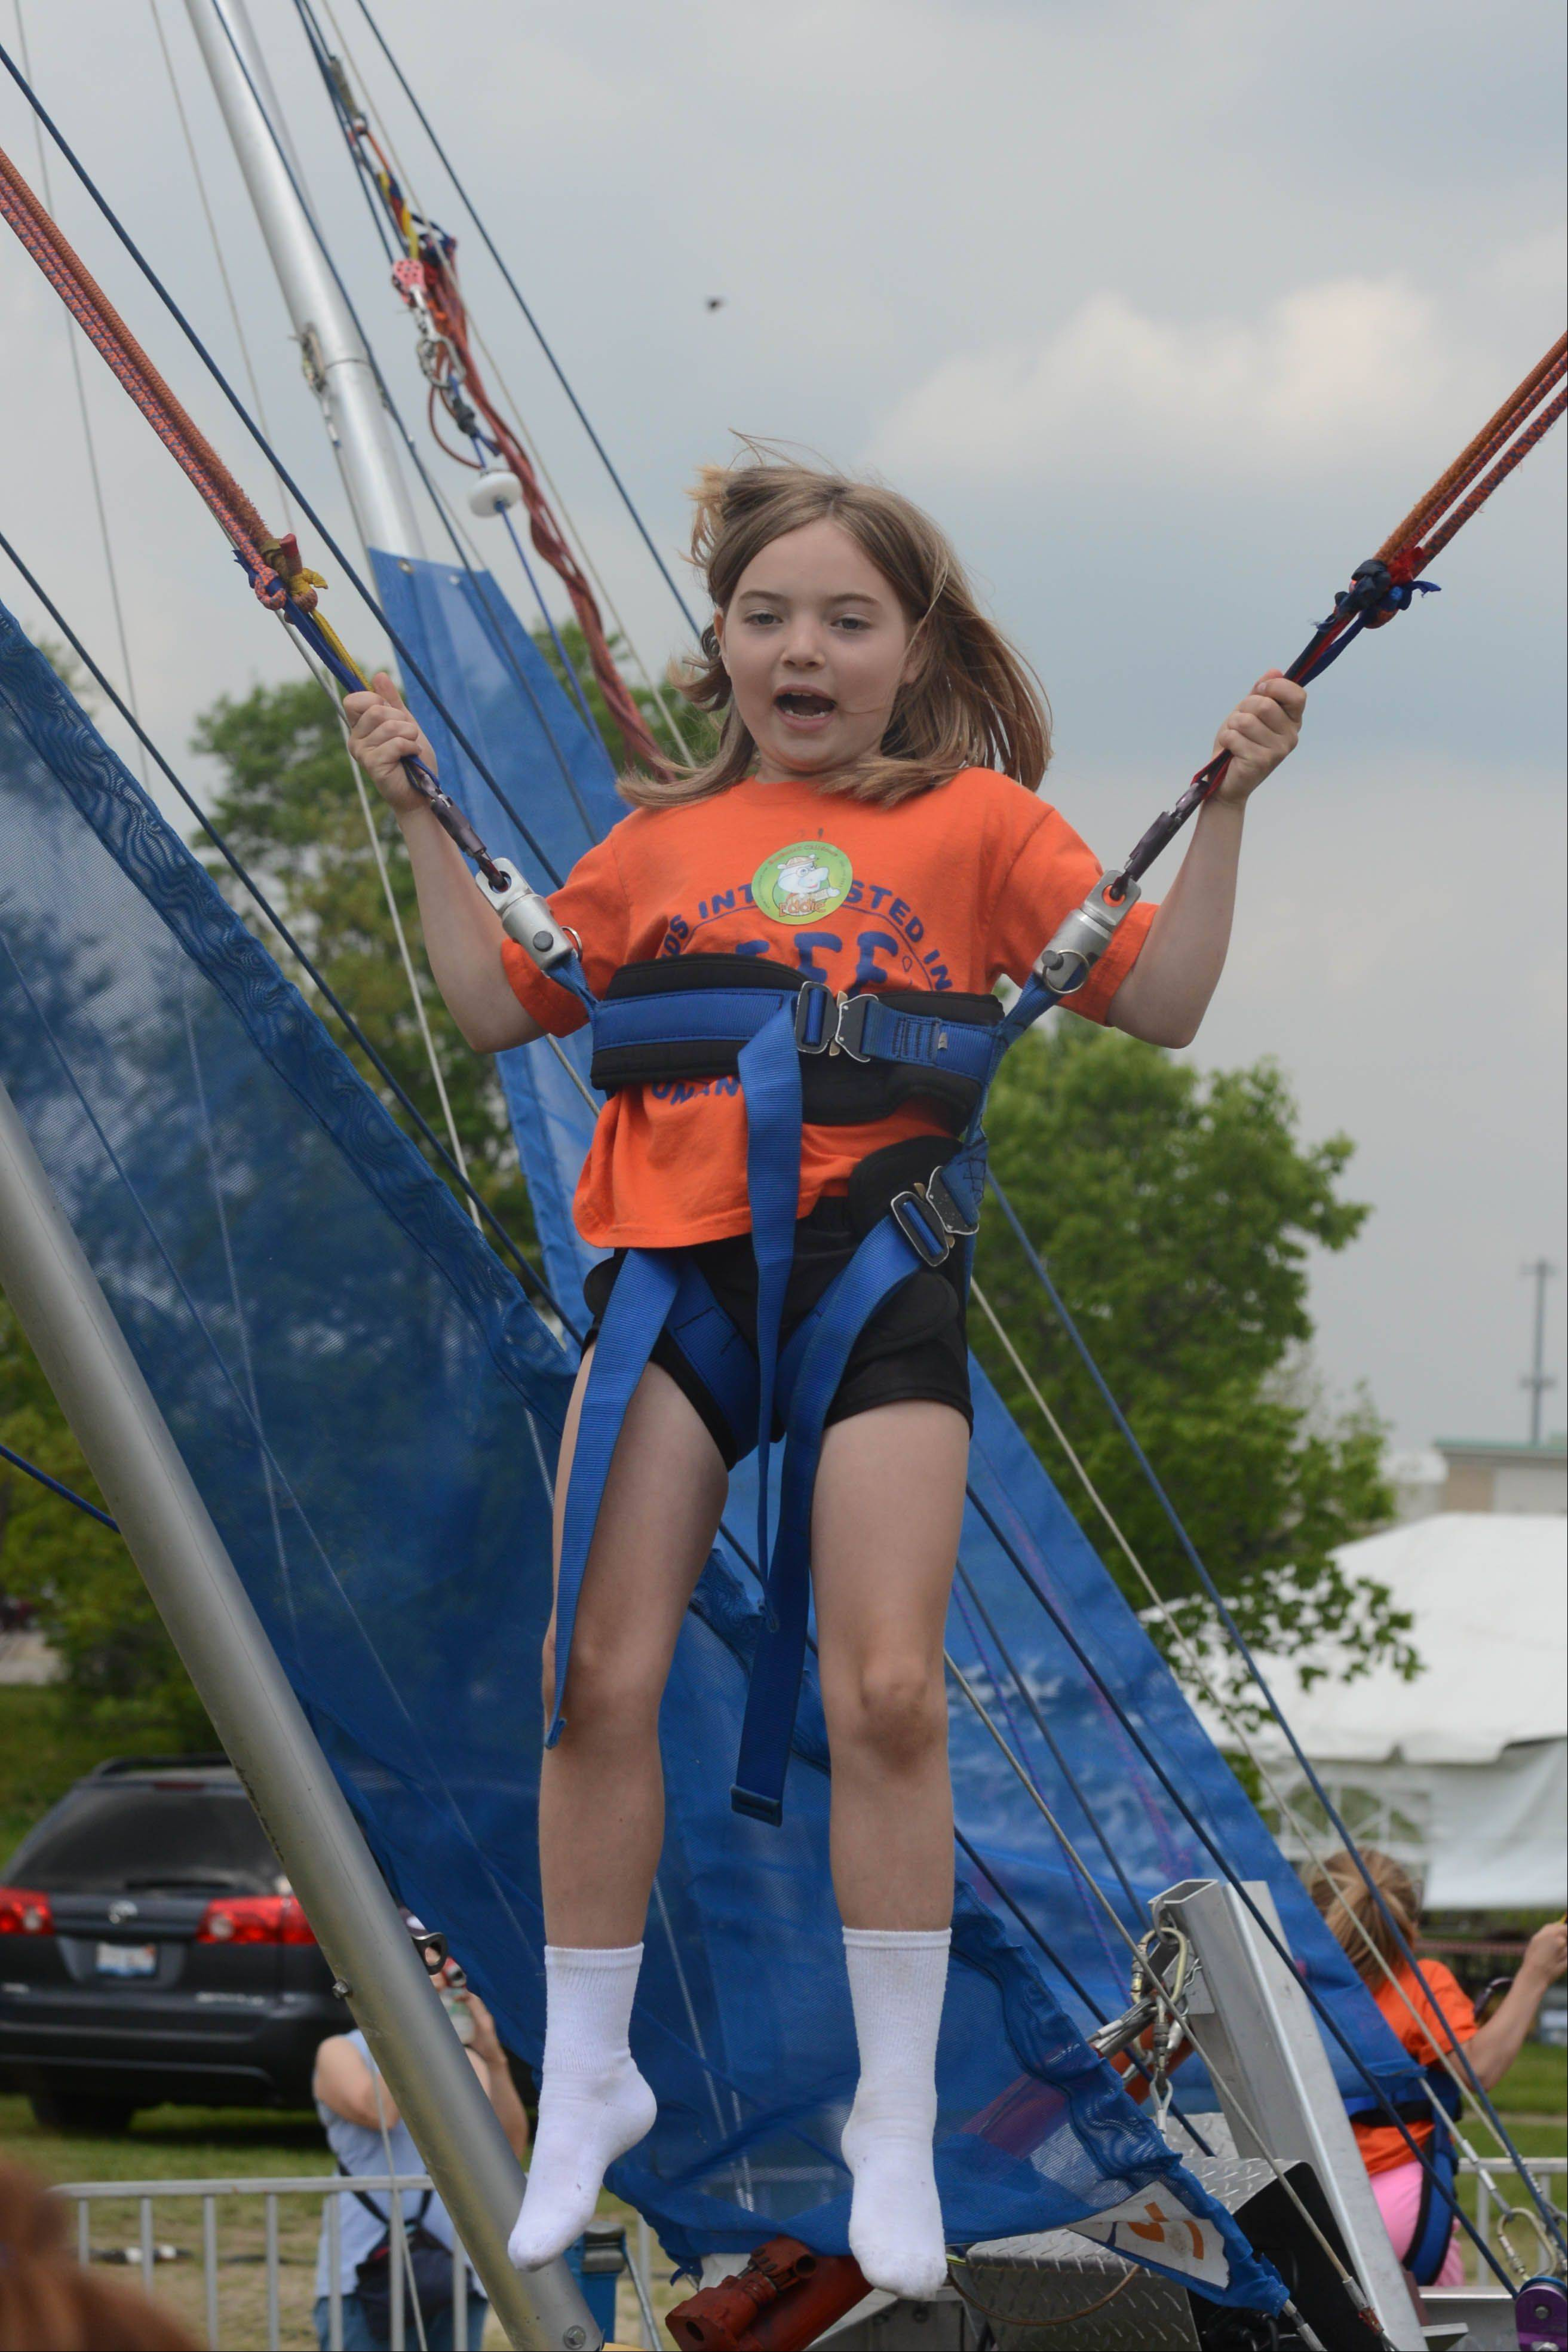 Maggie Nelson, 9, of Carol Stream rides the Eurobungy during the eighth annual JustPlay! Sports & Rec Festival in Carol Stream Saturday.